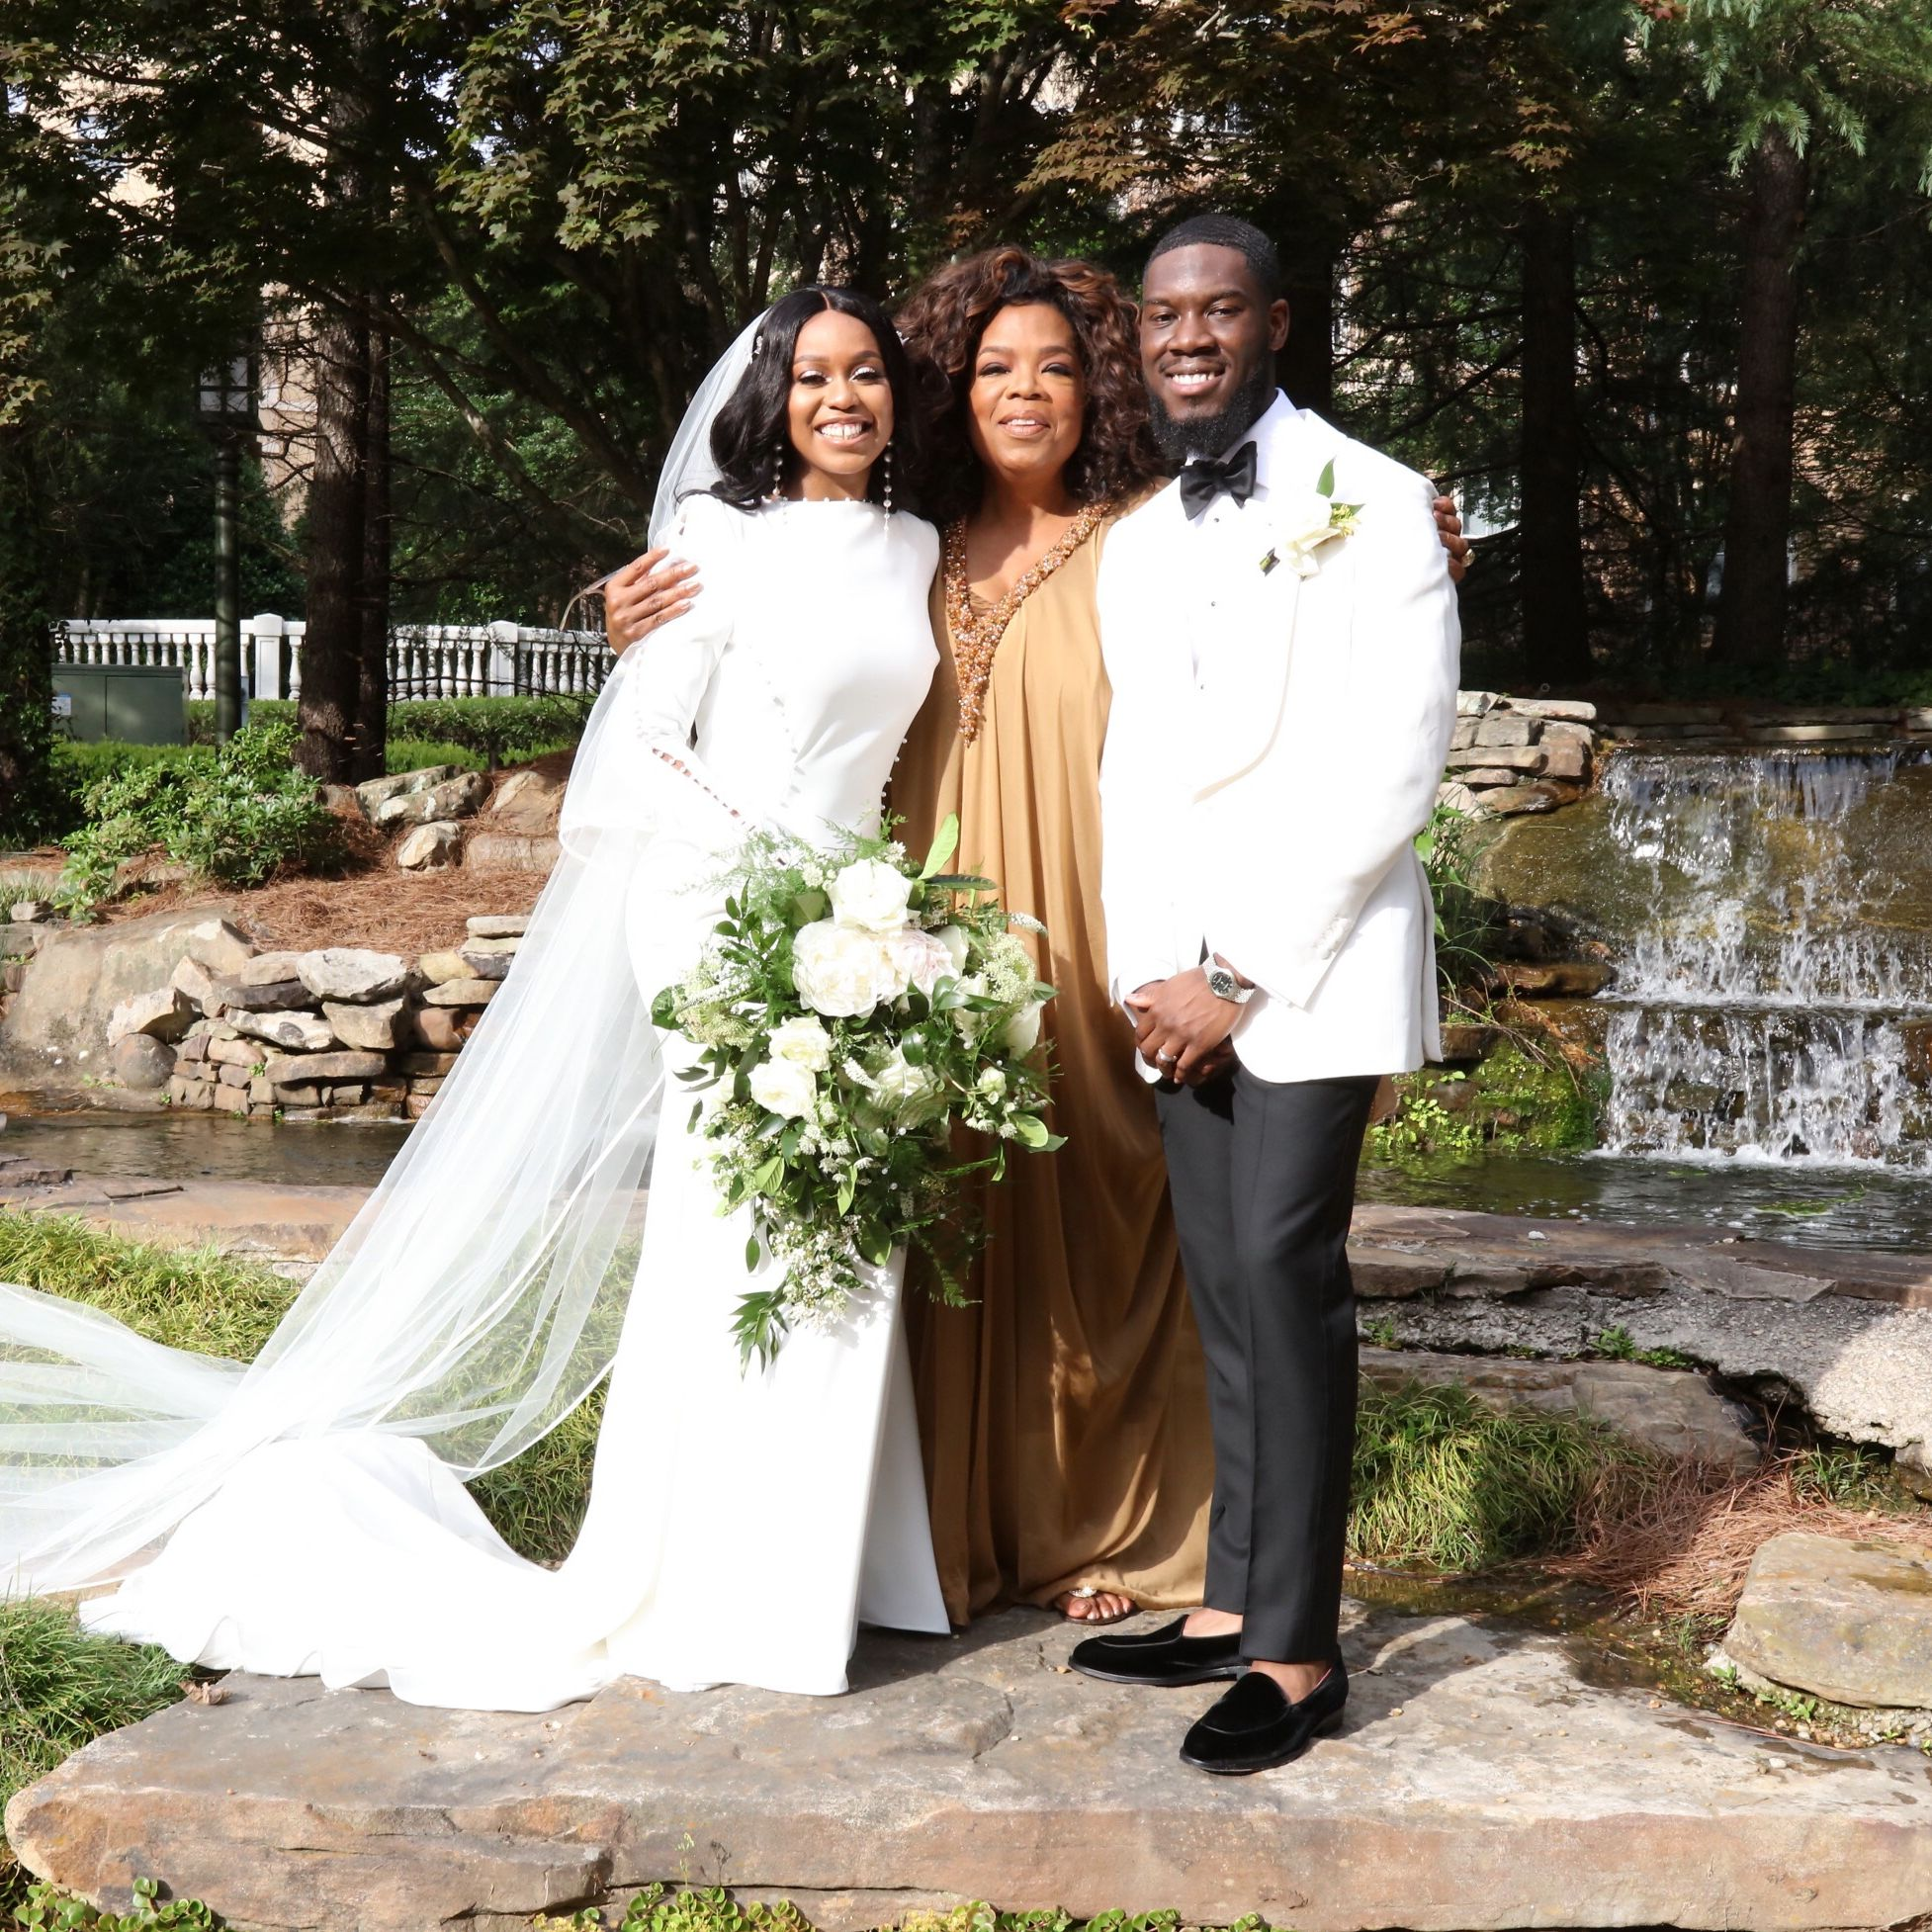 Oprah's Former Student Recalls the Emotional Moment Oprah Walked Her Down the Aisle